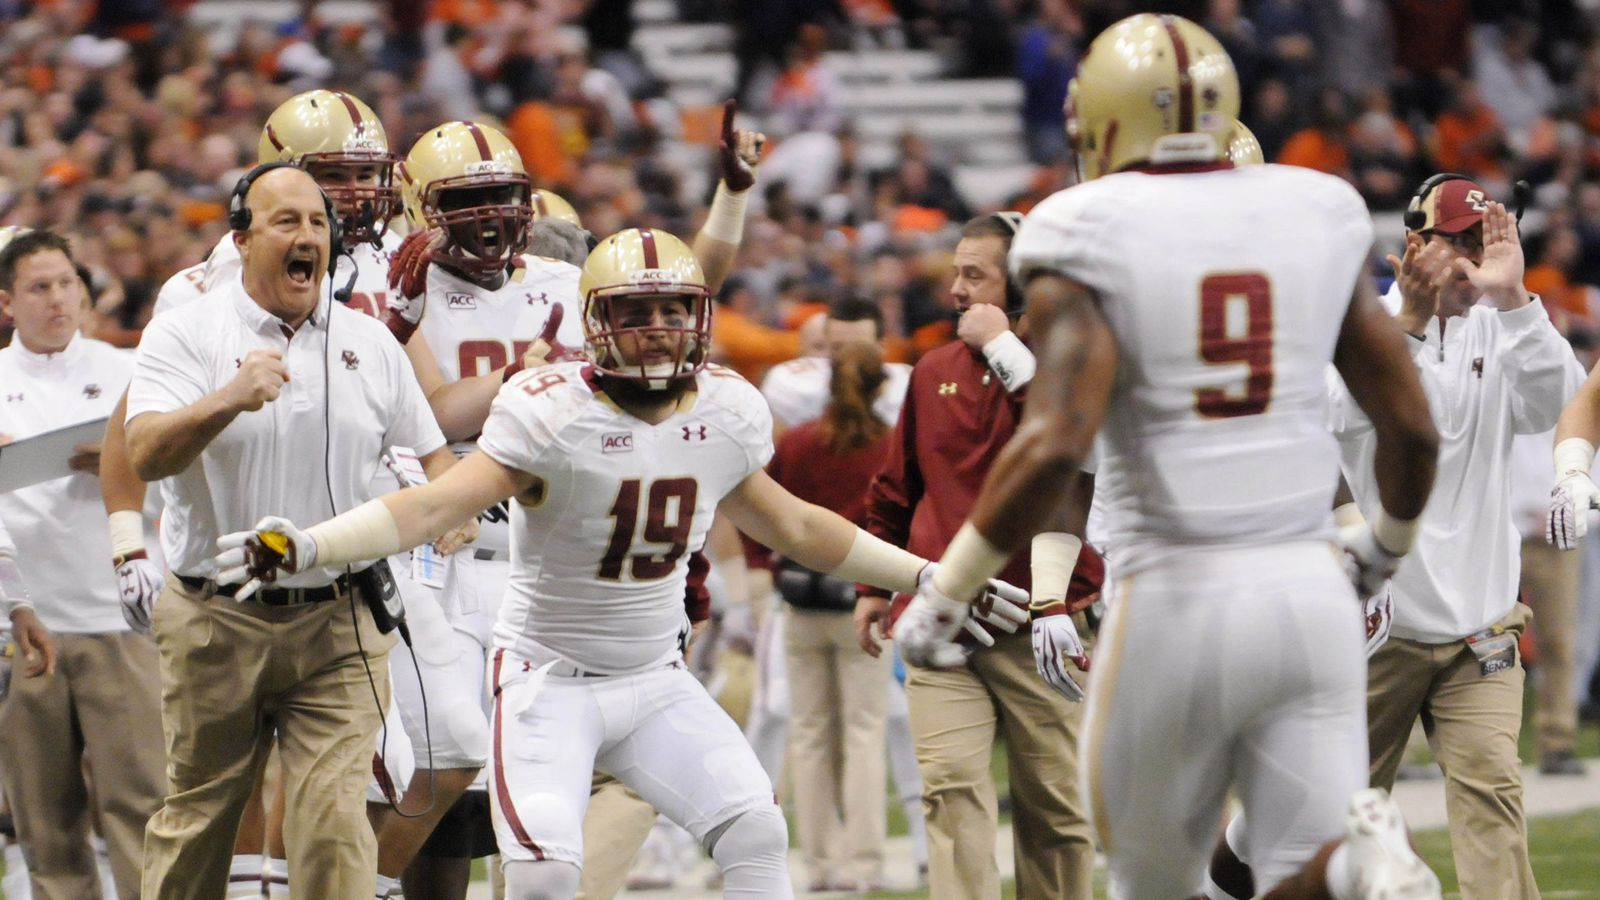 Need Boston College Eagles Football Tickets TicketCity offers 100 moneyback guarantee uptodate prices amp event information Over 1 million customers served since